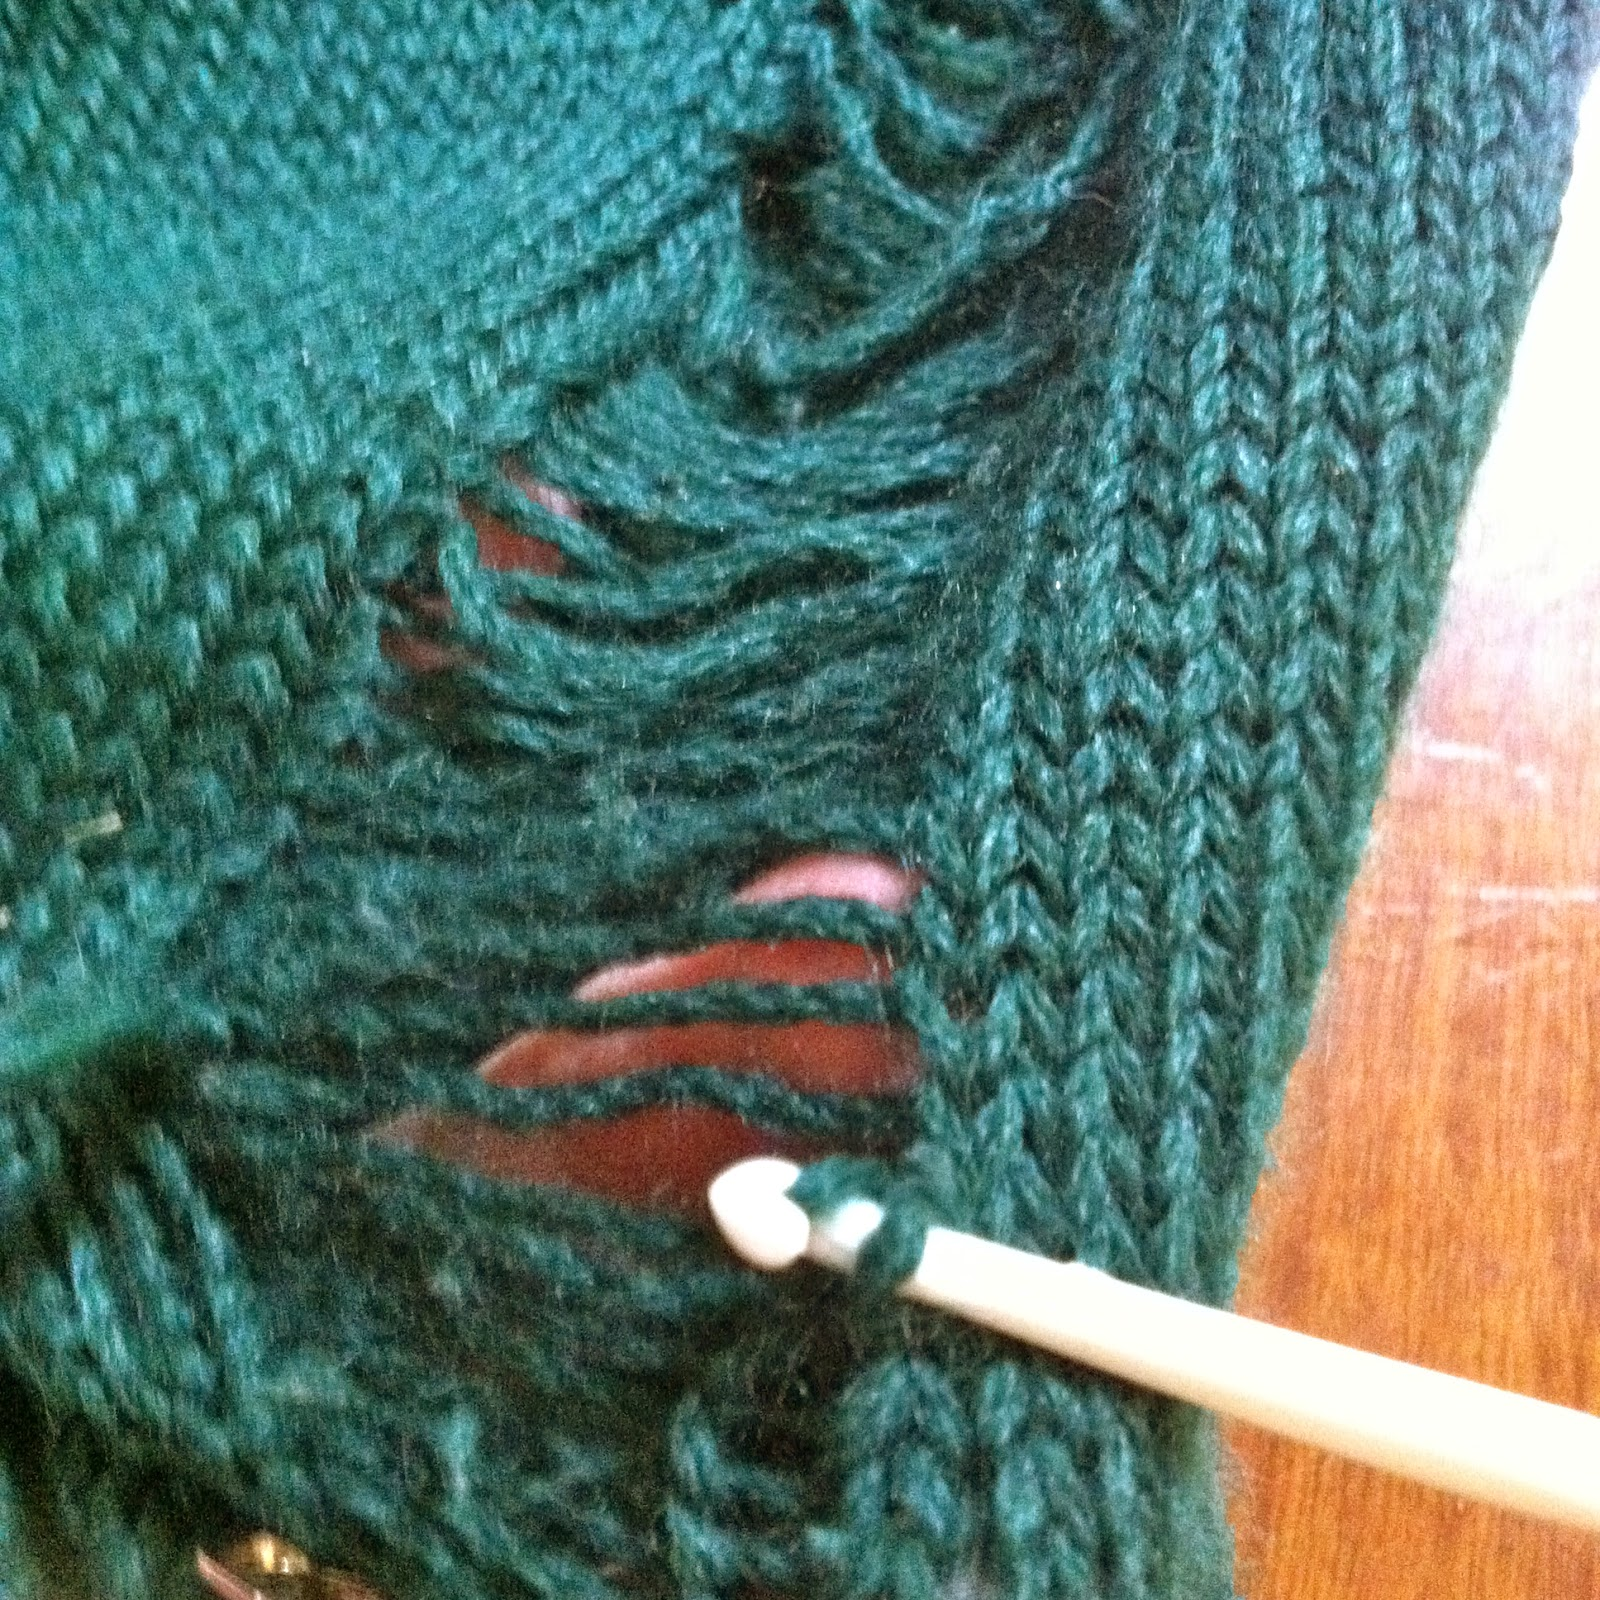 Knitting Hook Broken Age : Fashioned by lyndell mending an hand knit